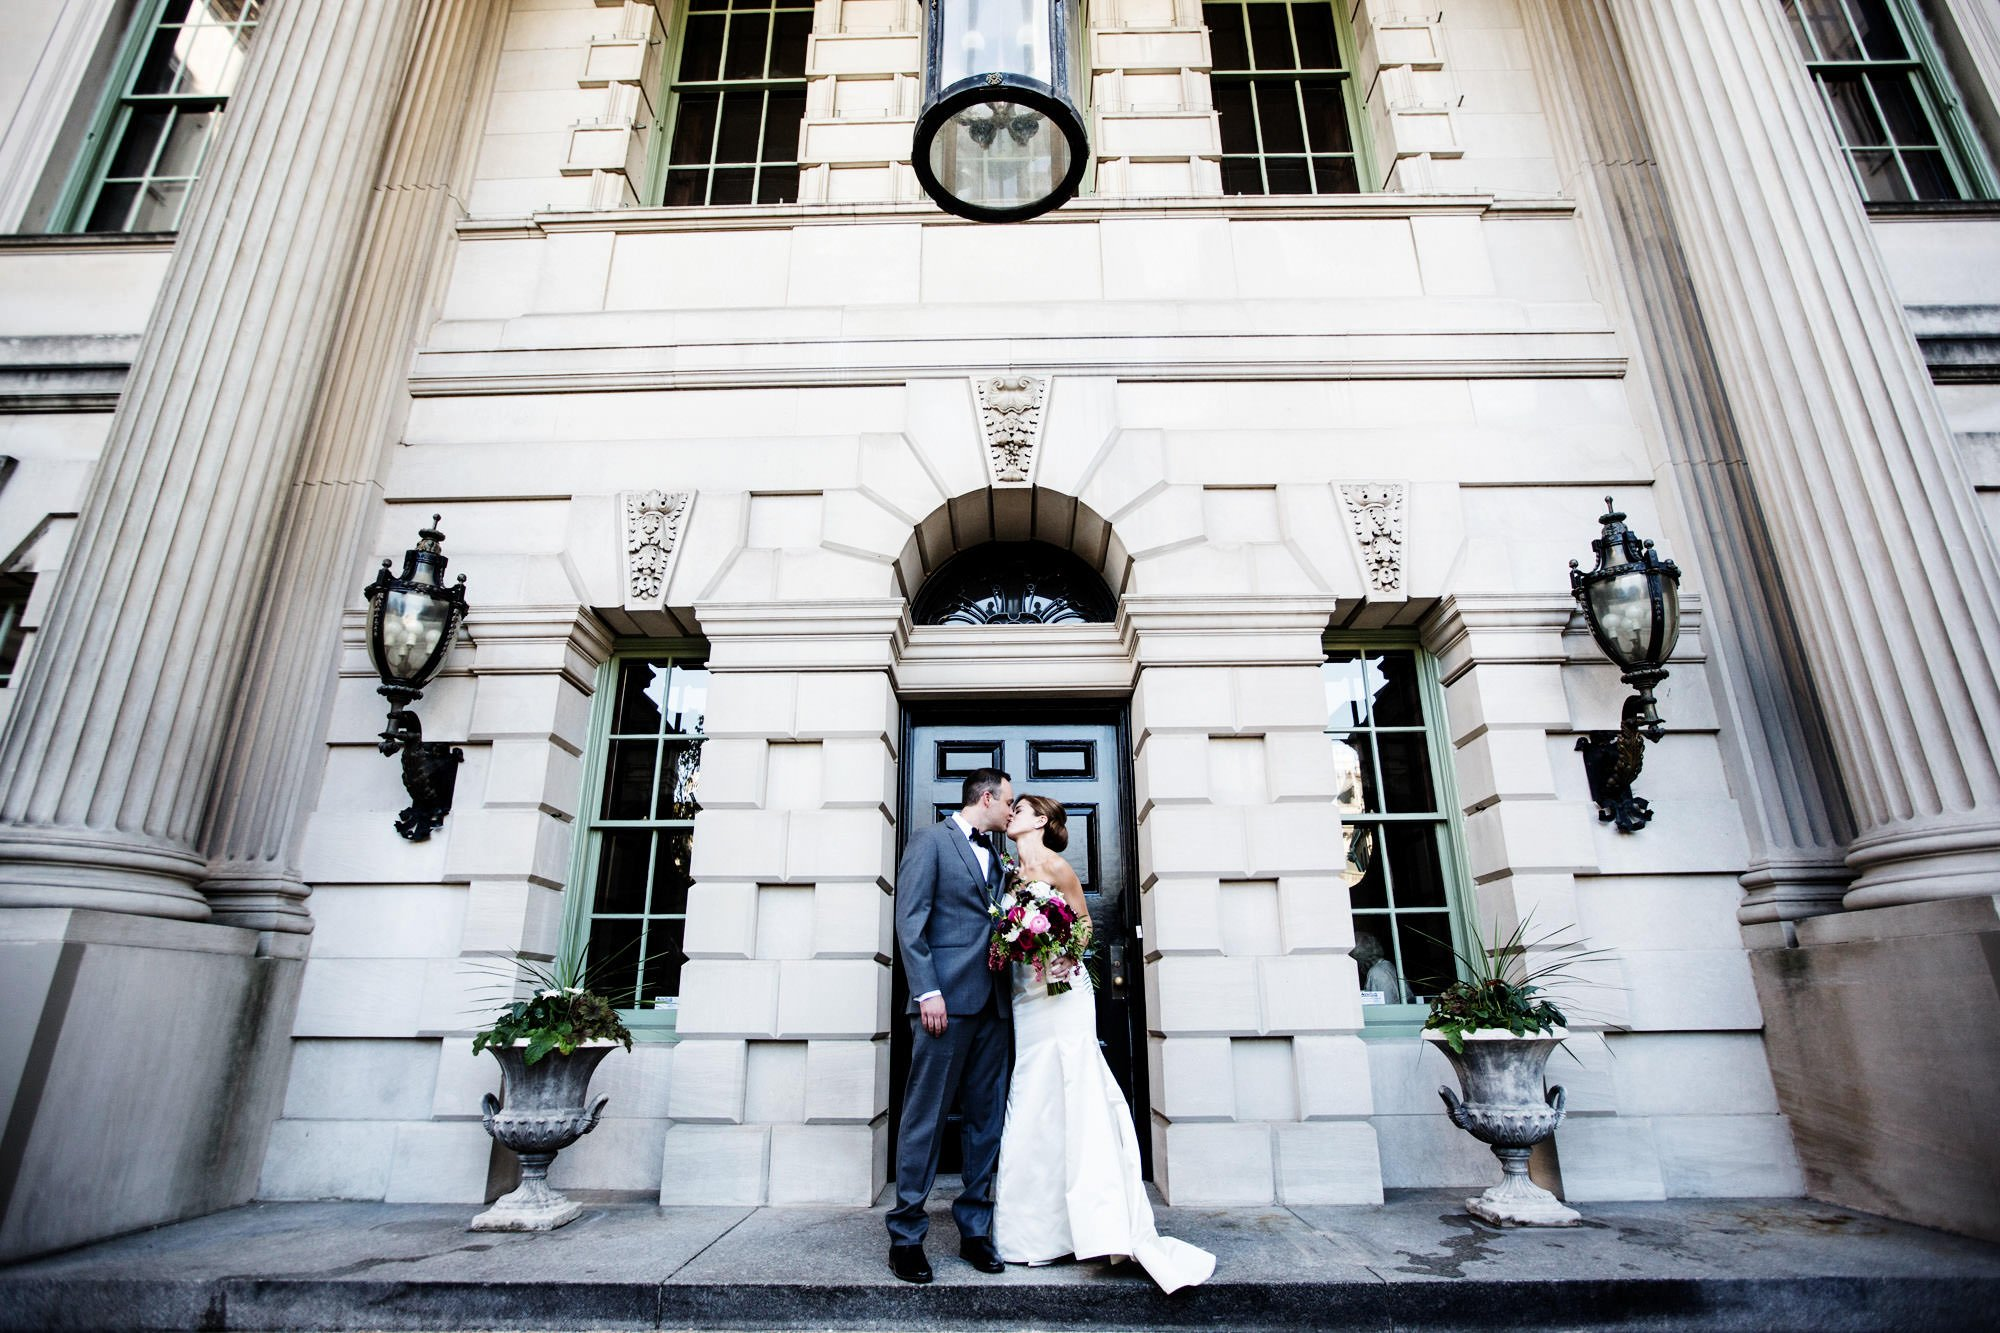 The bride and groom kiss at the entrance of Anderson House in Washington, DC.